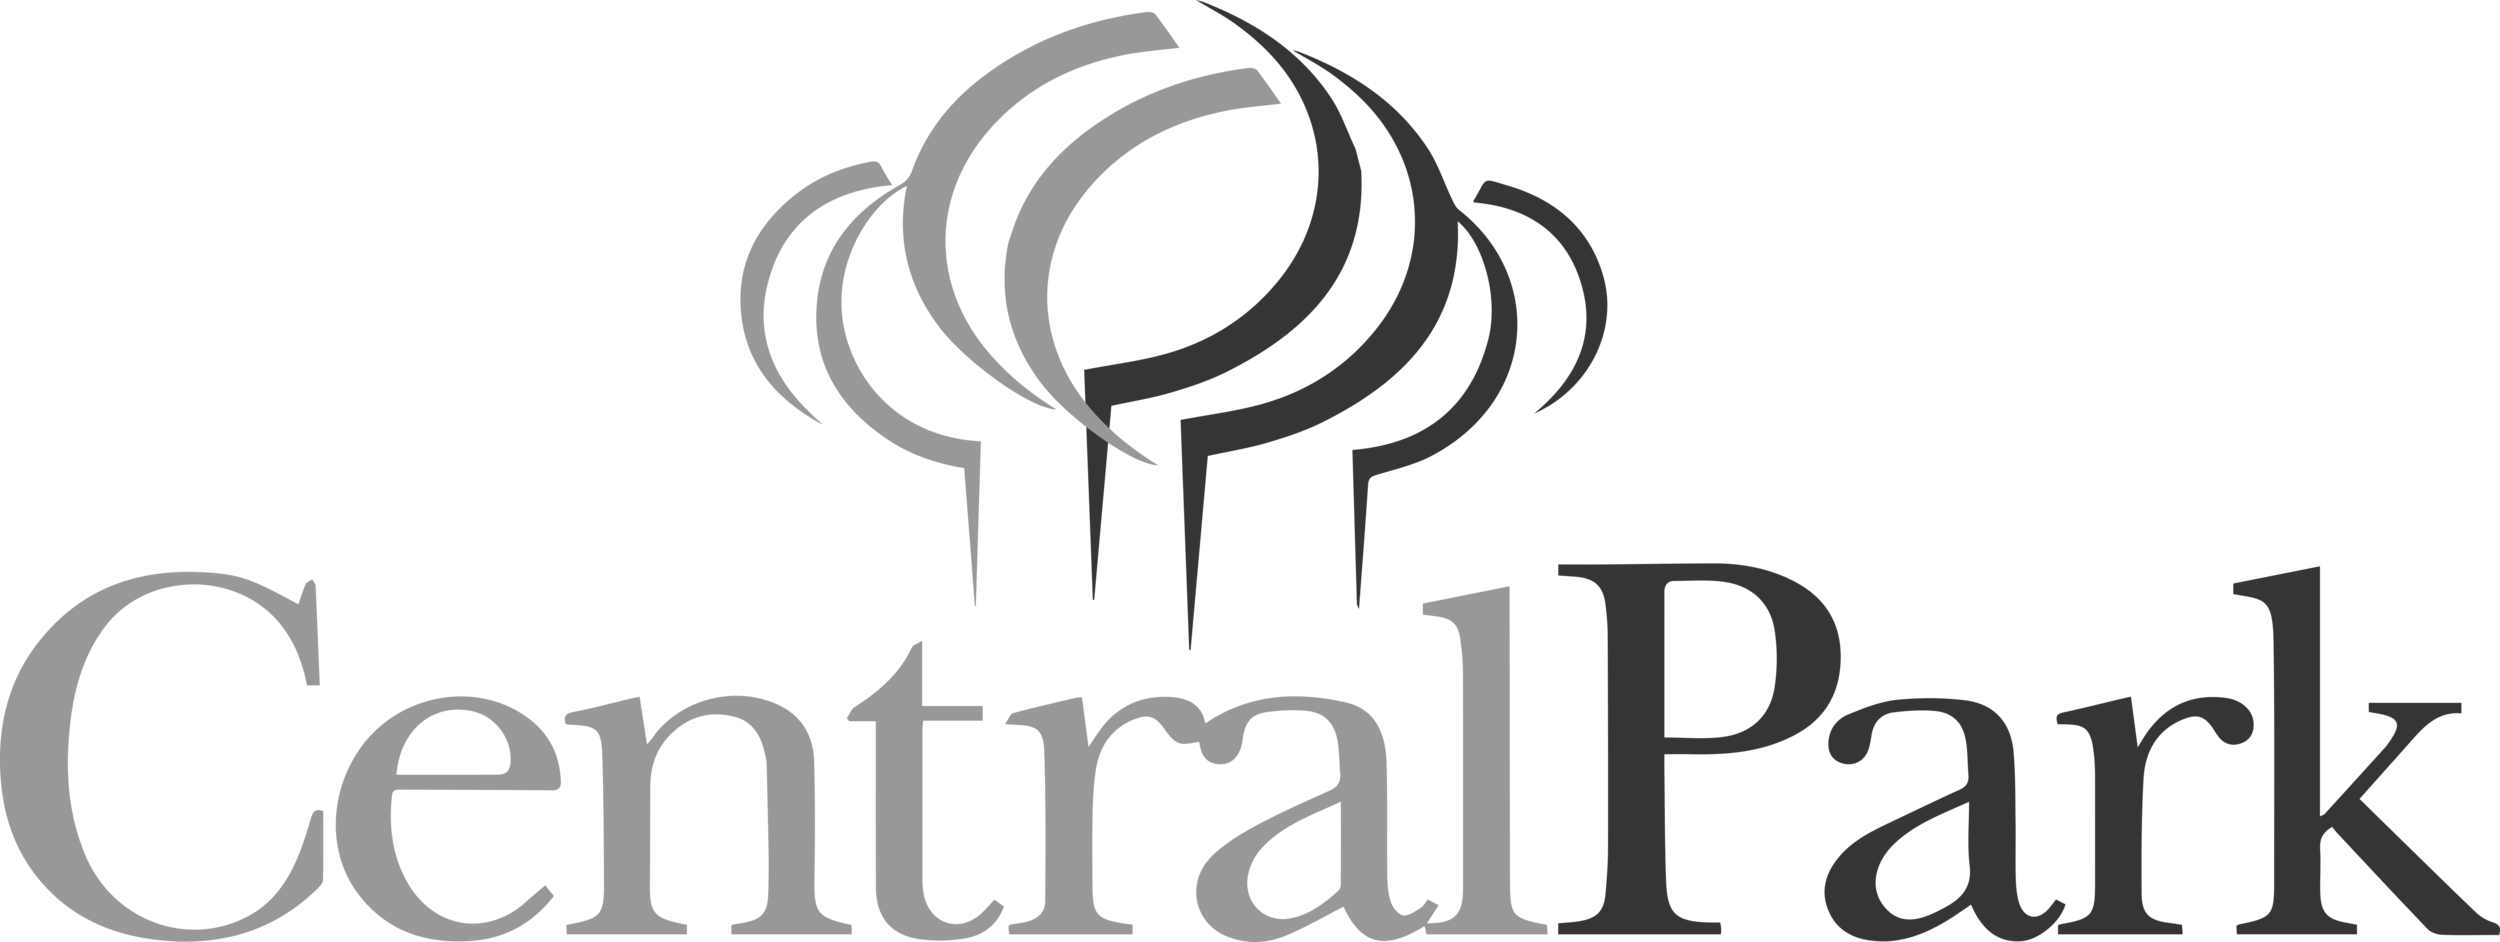 Central Park logo gray_black.png